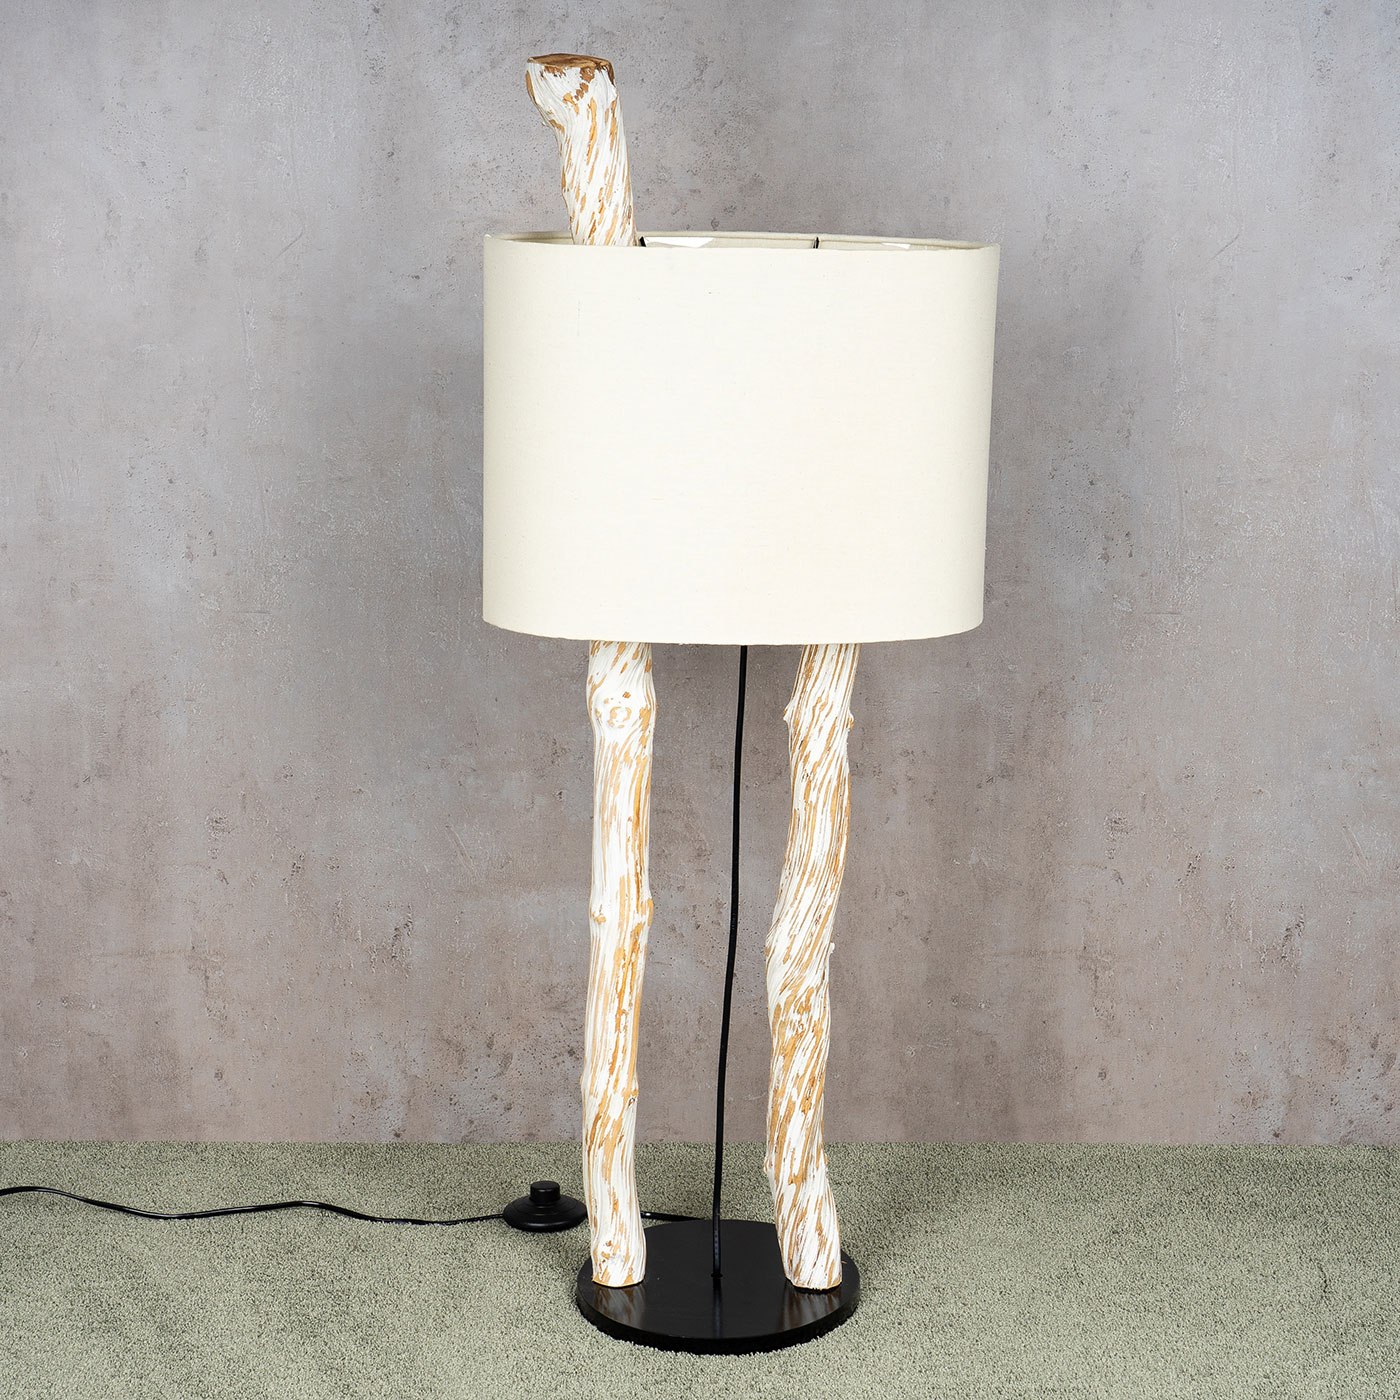 Stehlampe Hohe 95cm Treibholz Stehleuchte Holz Lampe Teakholz Weiss